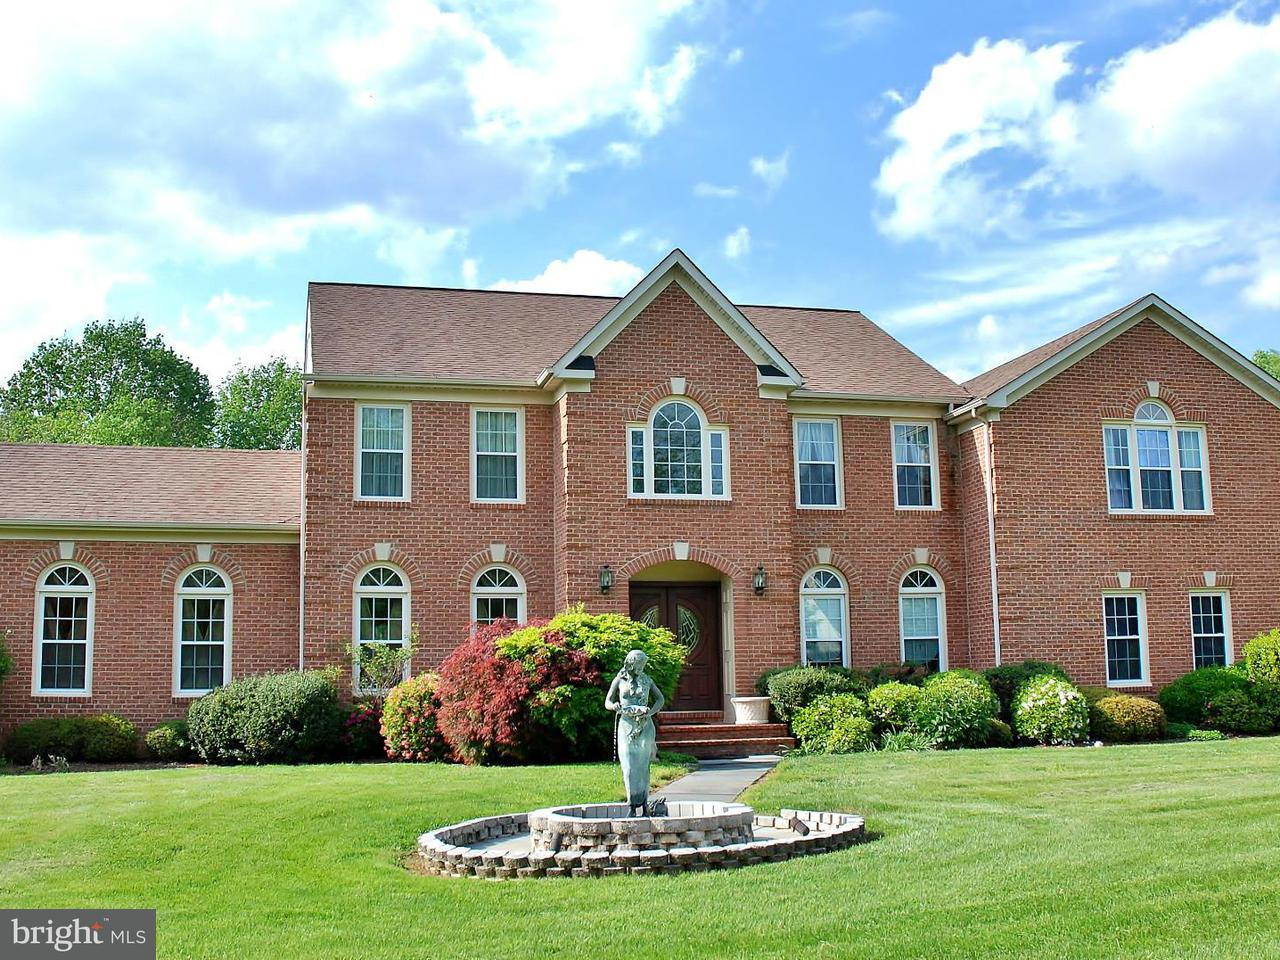 Single Family Home for Sale at 13332 MANOR STONE Drive 13332 MANOR STONE Drive Germantown, Maryland 20874 United States